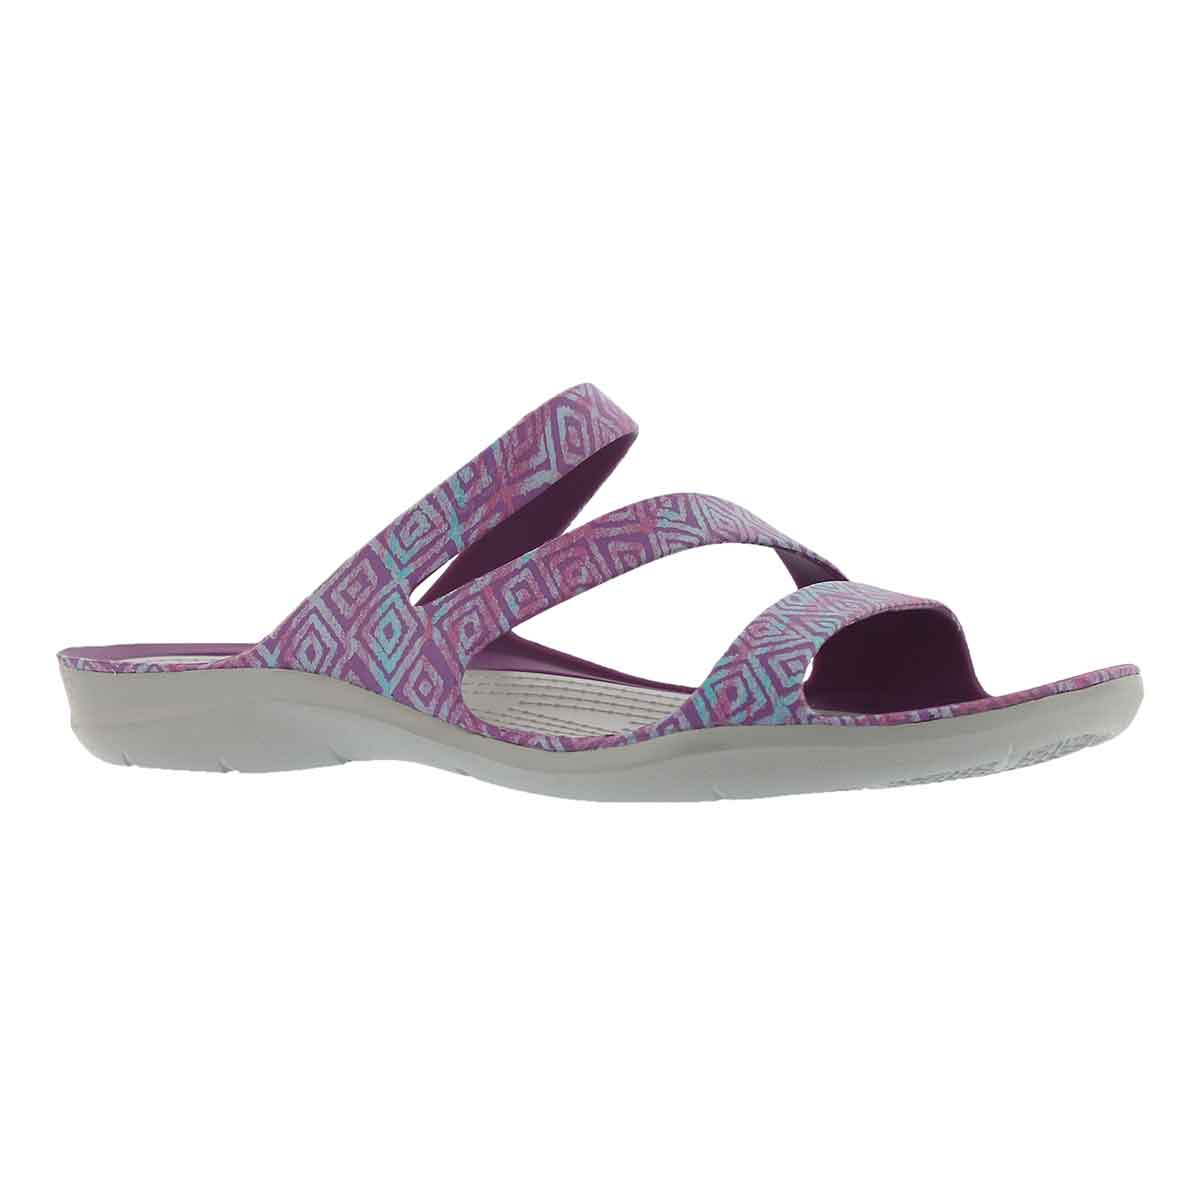 Women's SWIFTWATER GRAPHIC amethyst/gry sandals